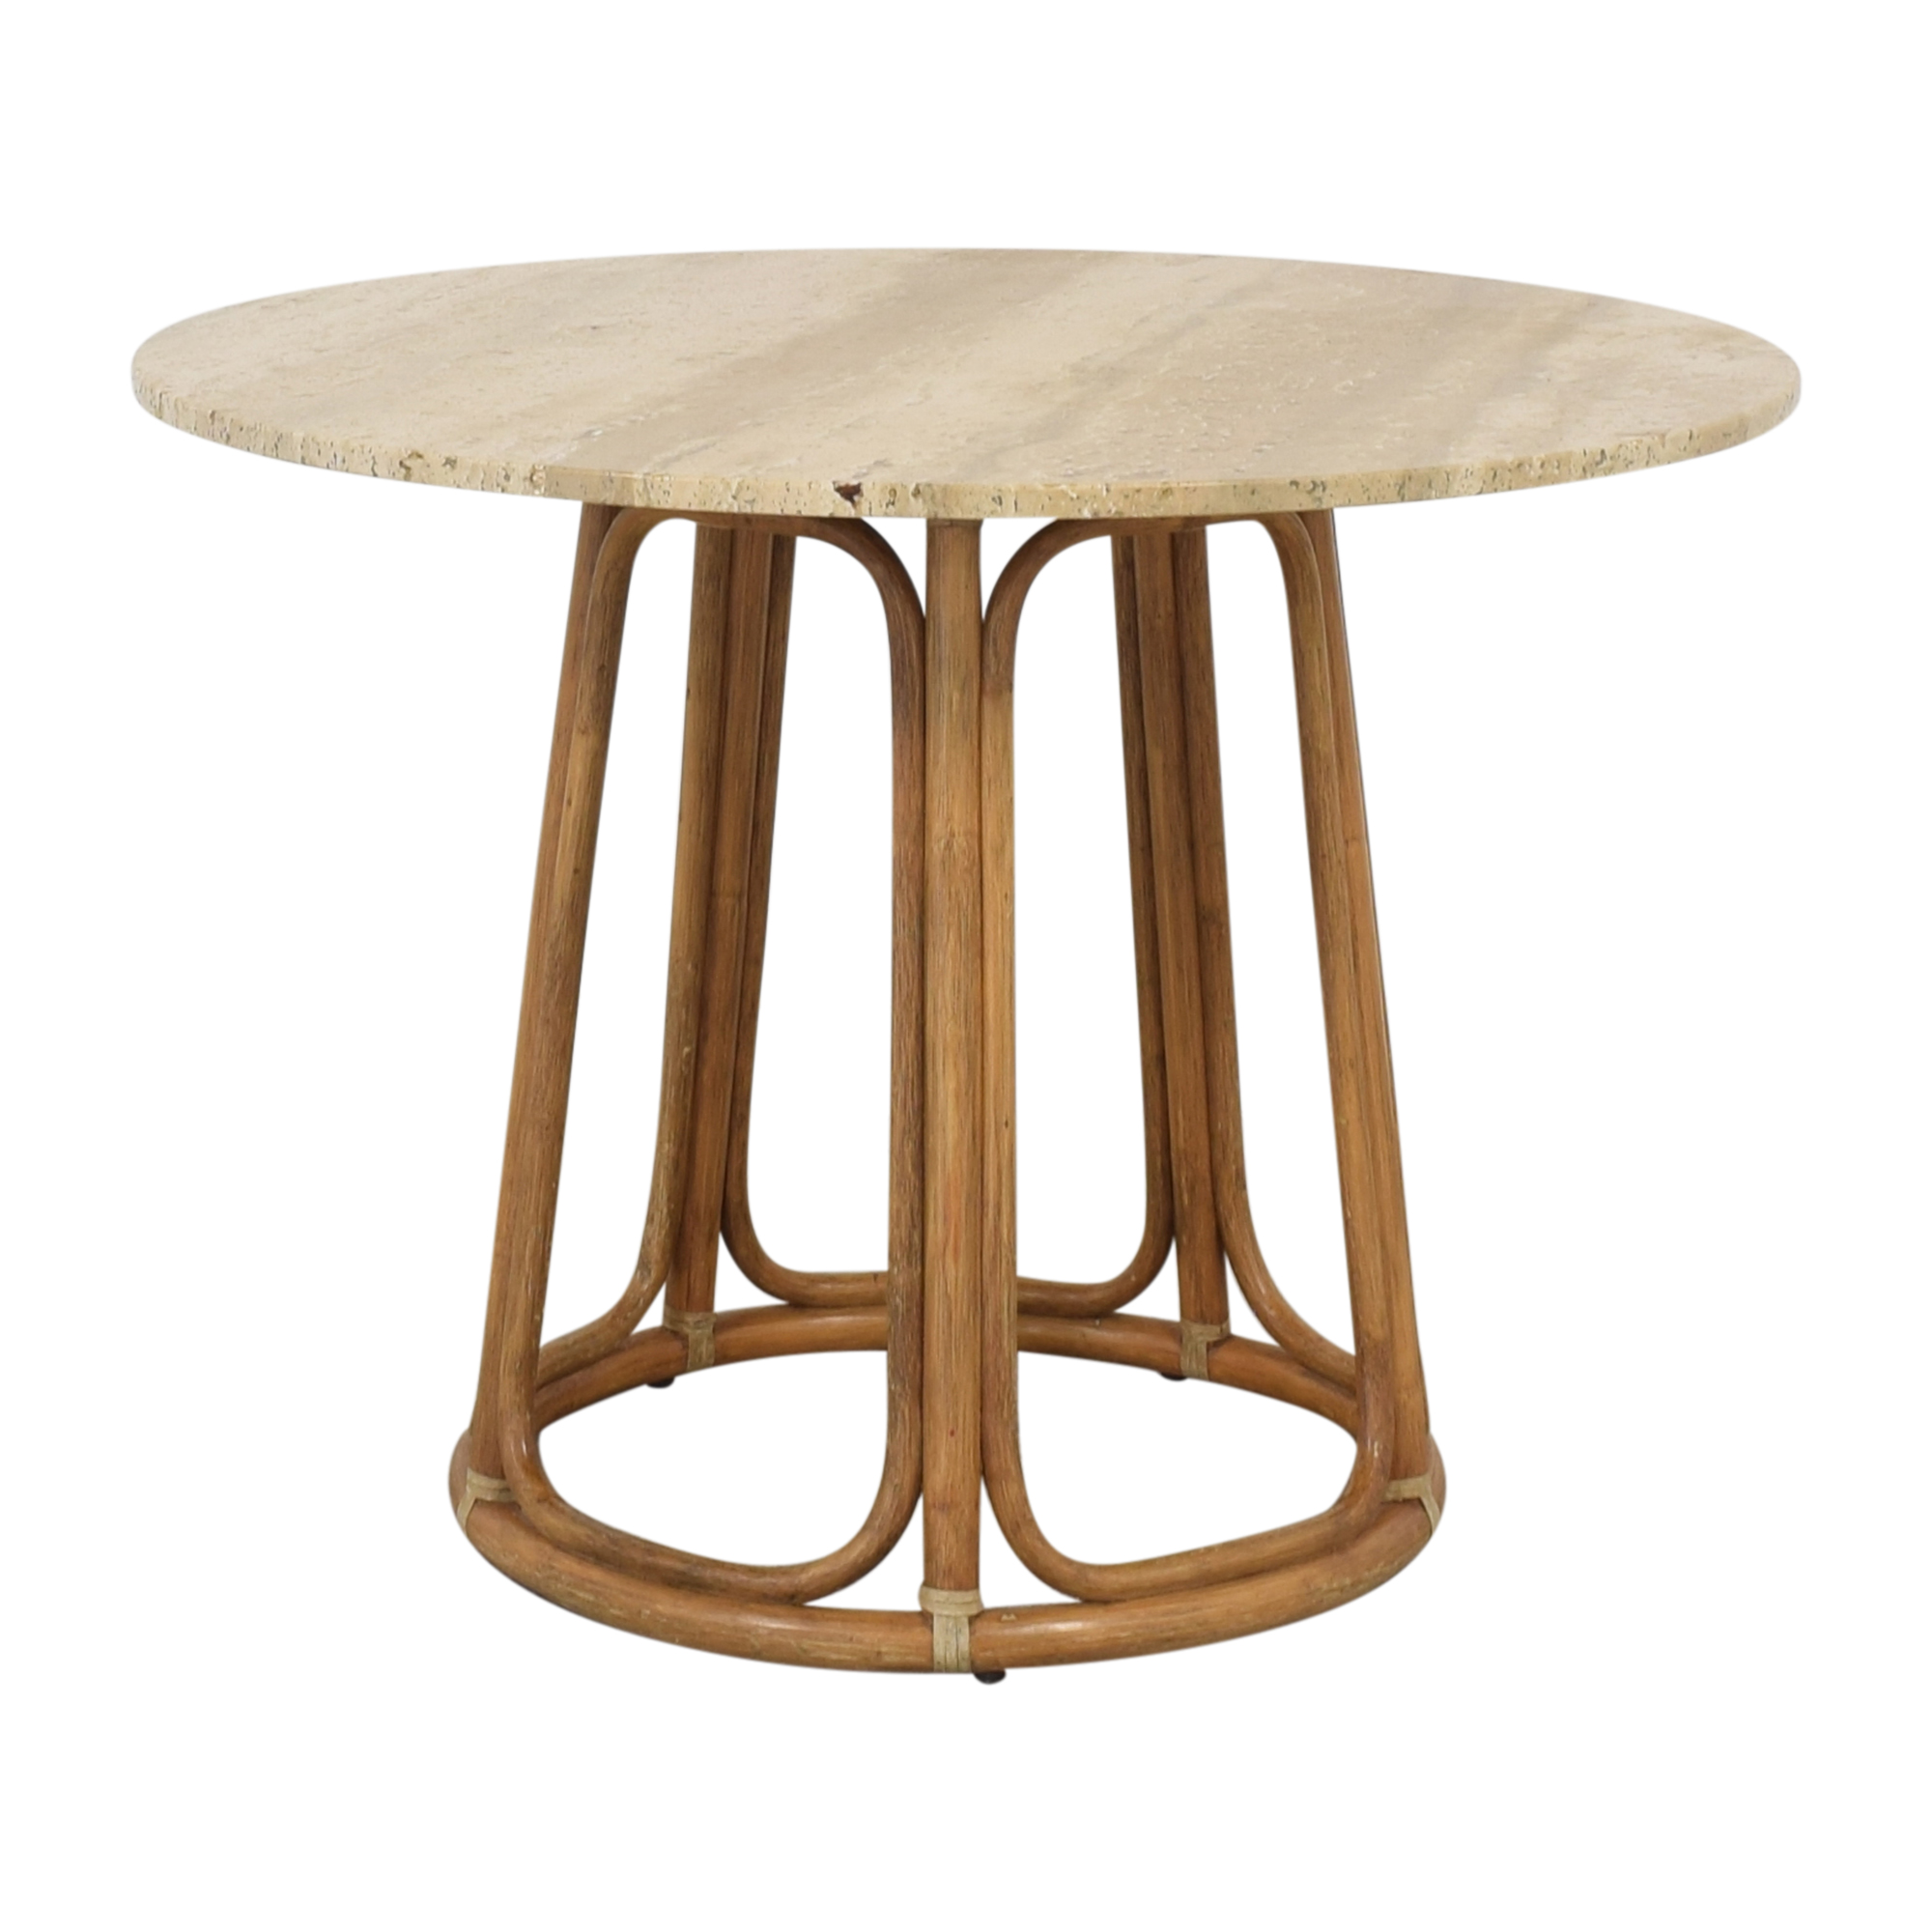 McGuire McGuire Dining Table pa